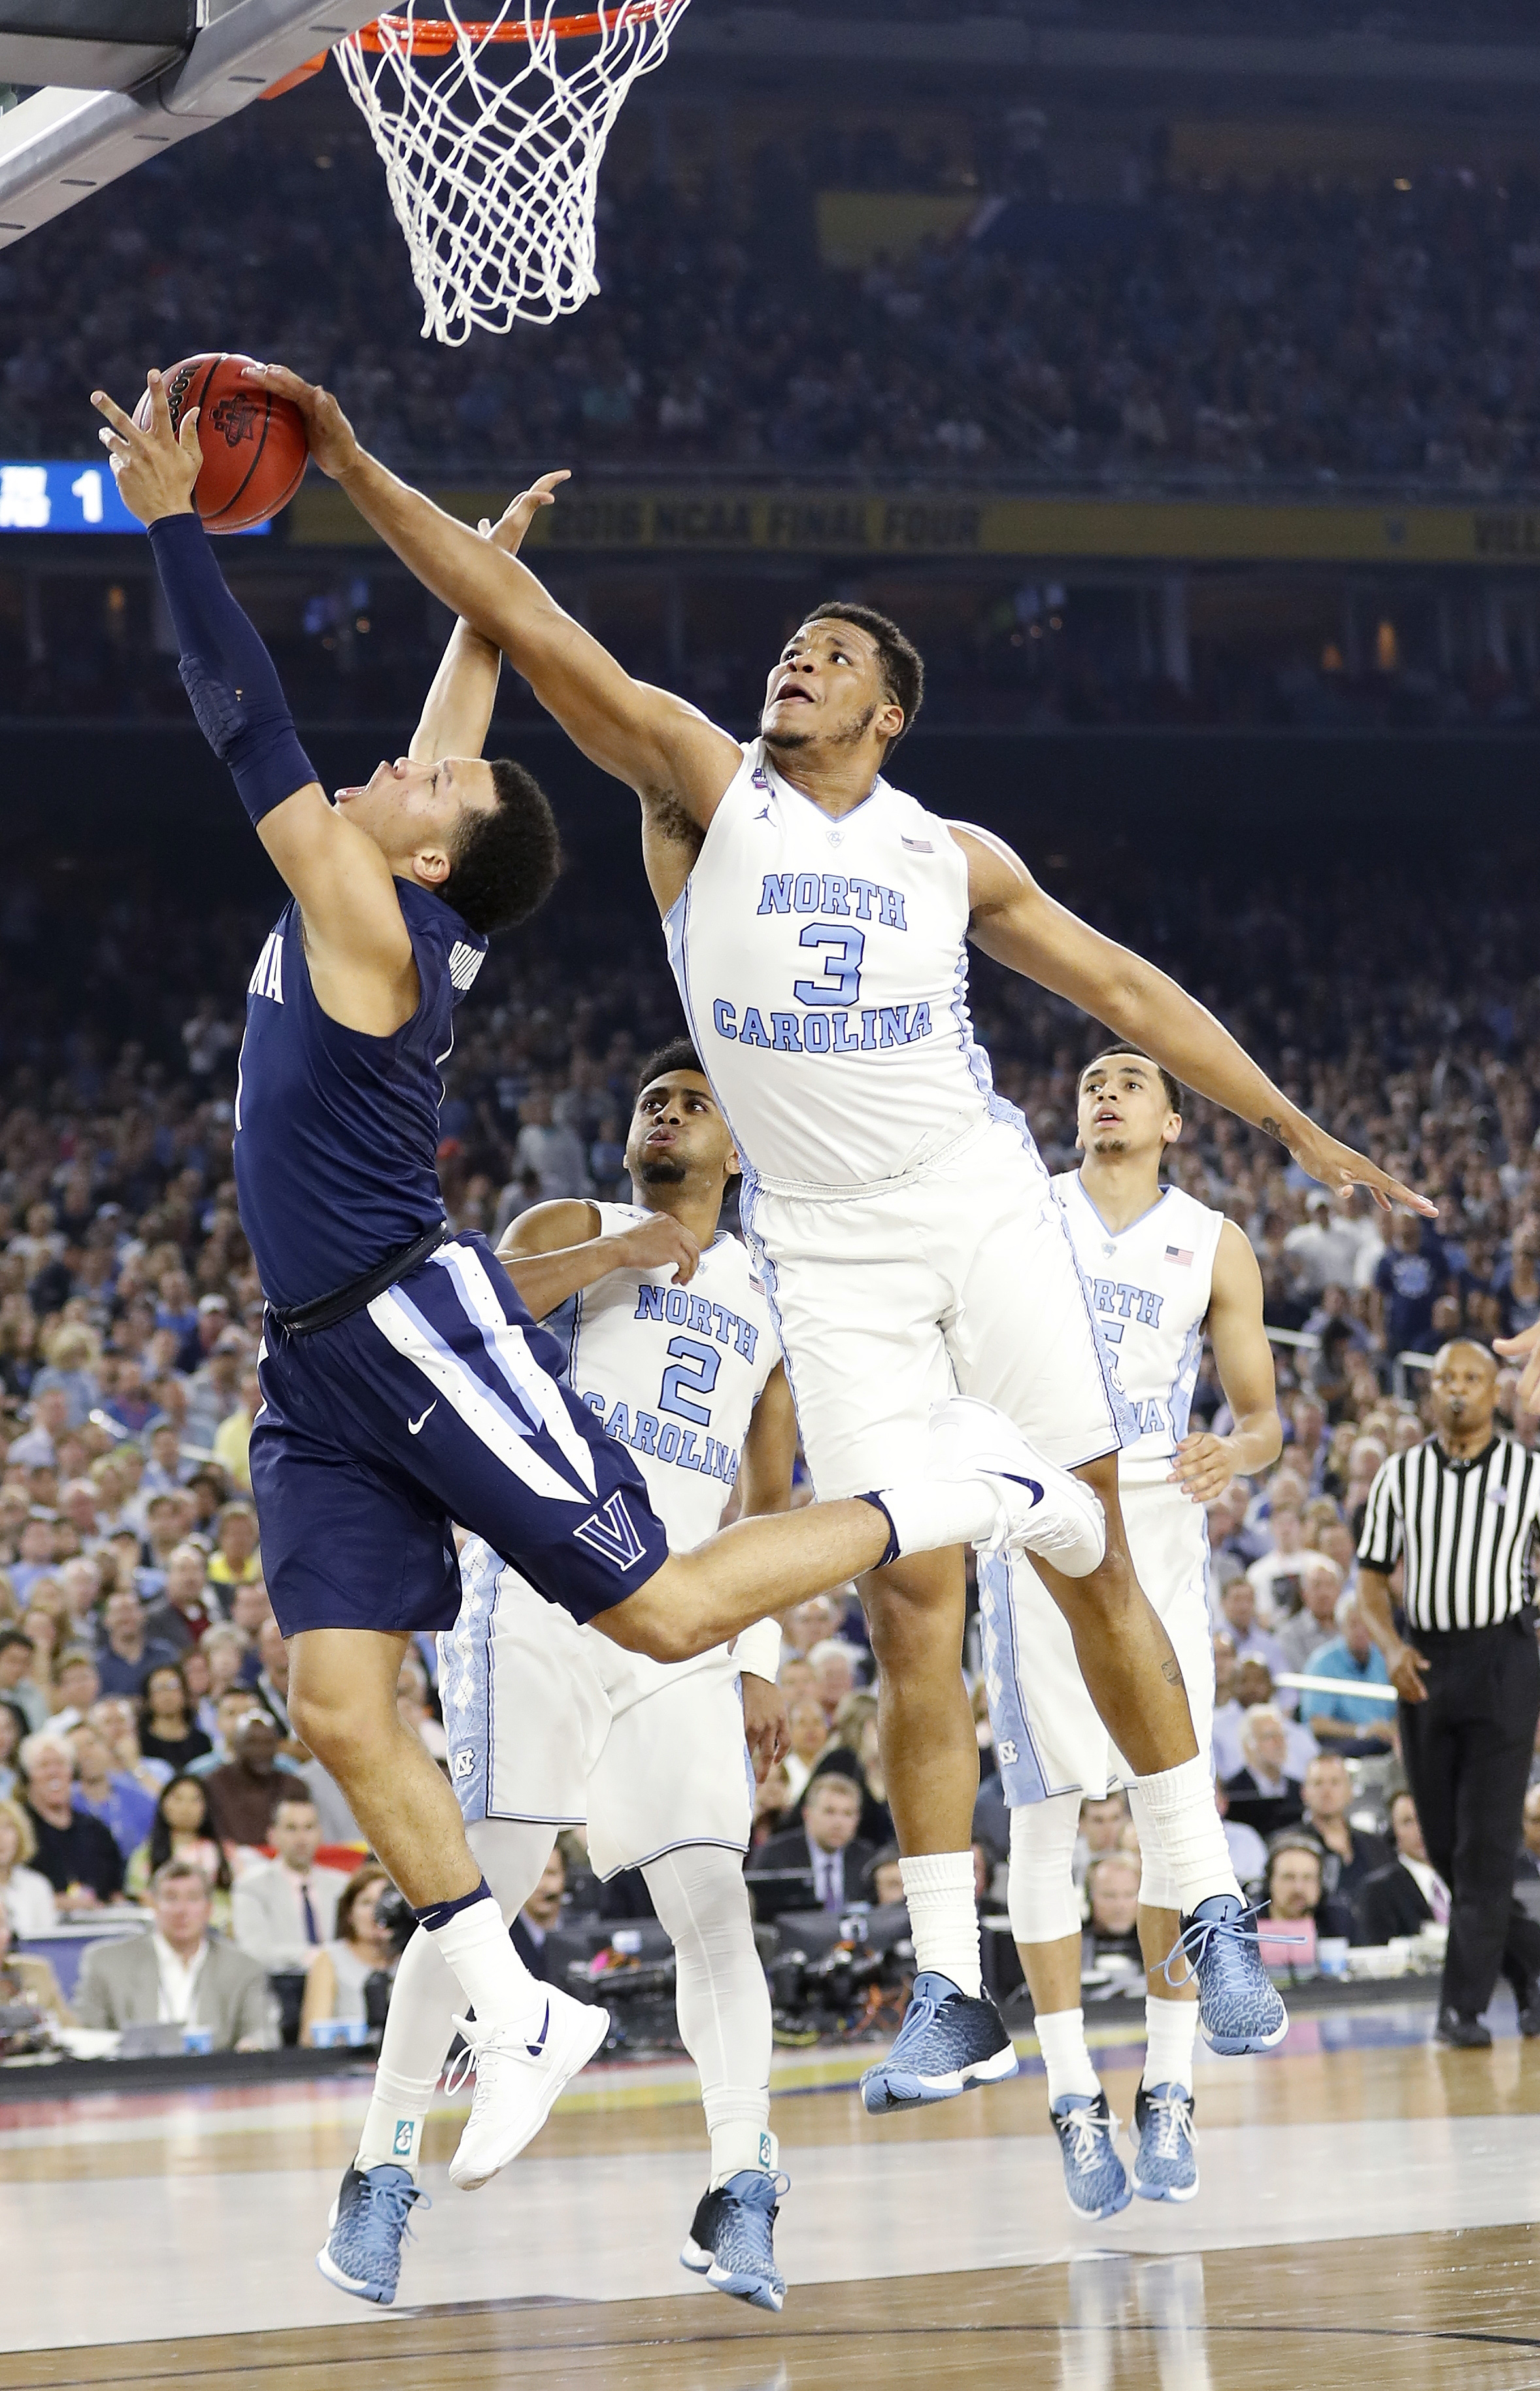 Villanova guard Jalen Brunson (1) has his shot defended by North Carolina forward Kennedy Meeks (3) during the second half of the NCAA Final Four tournament college basketball championship game Monday, April 4, 2016, in Houston. (AP Photo/Eric Gay)